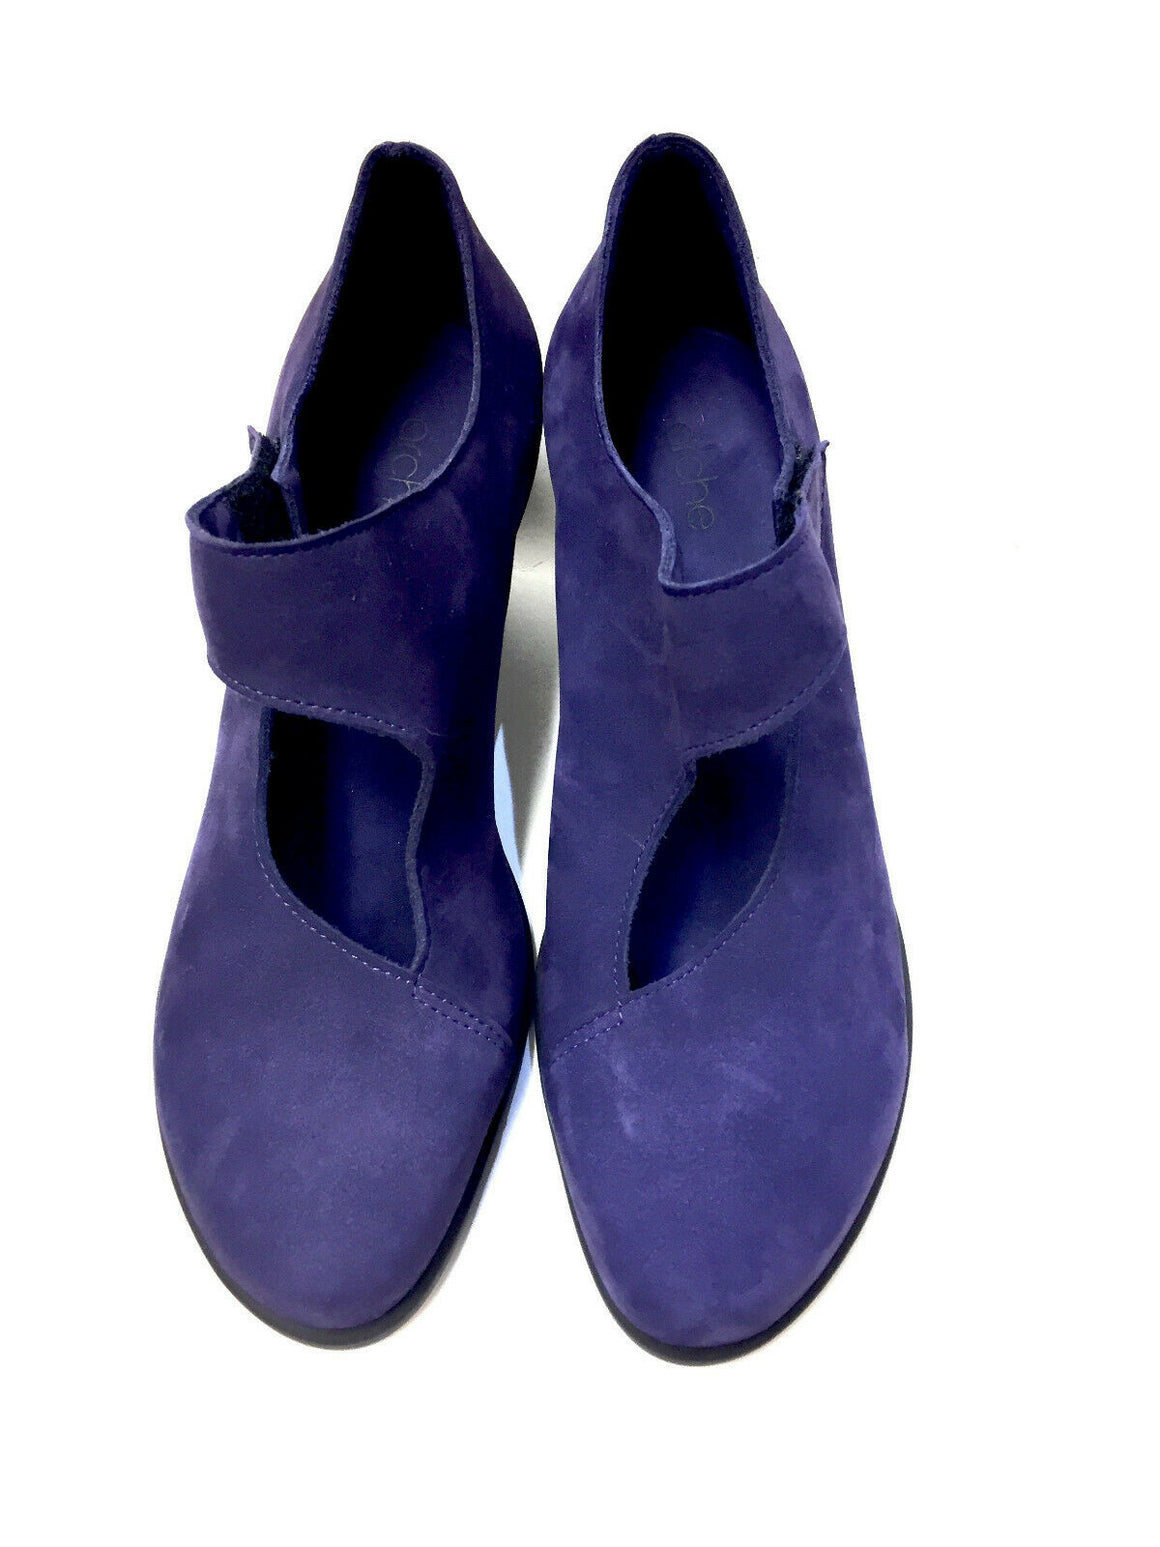 New ARCHE Purple Suede Mary Jane Low-Heel Pumps Shoes Sz39